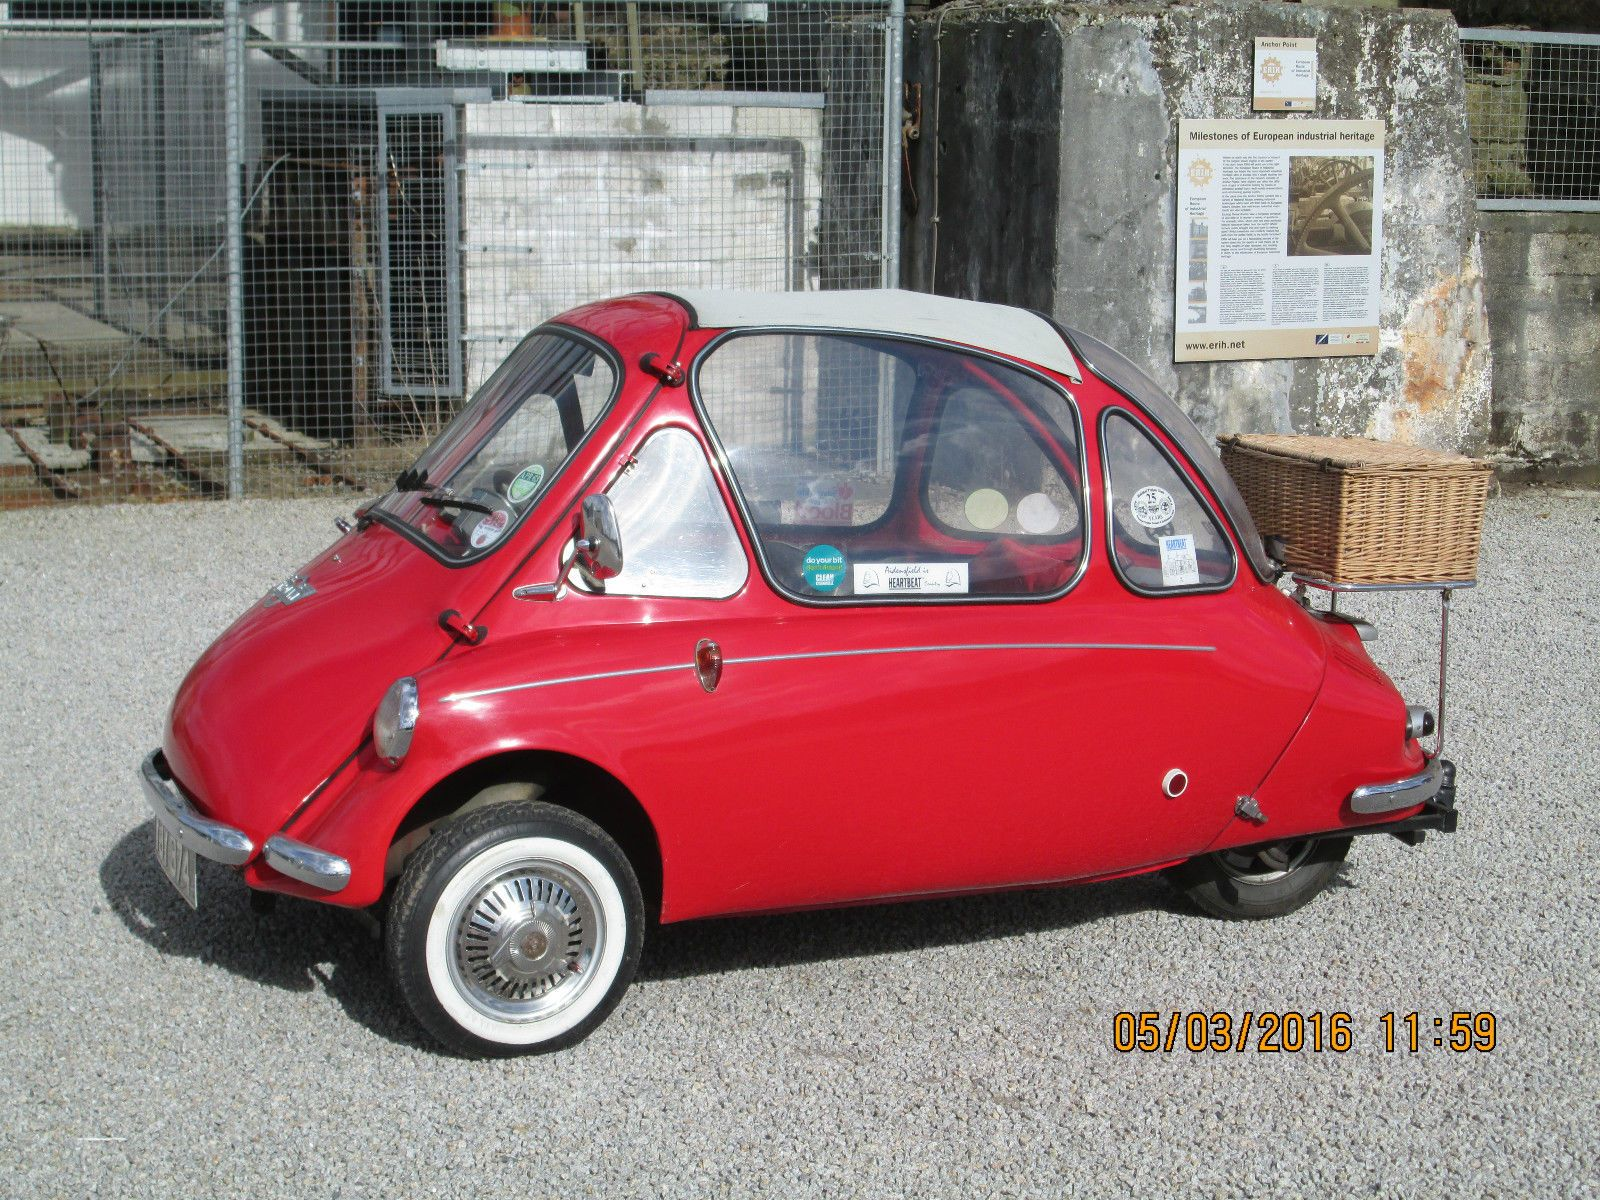 Heinkel Trojan Bubble Car Cars